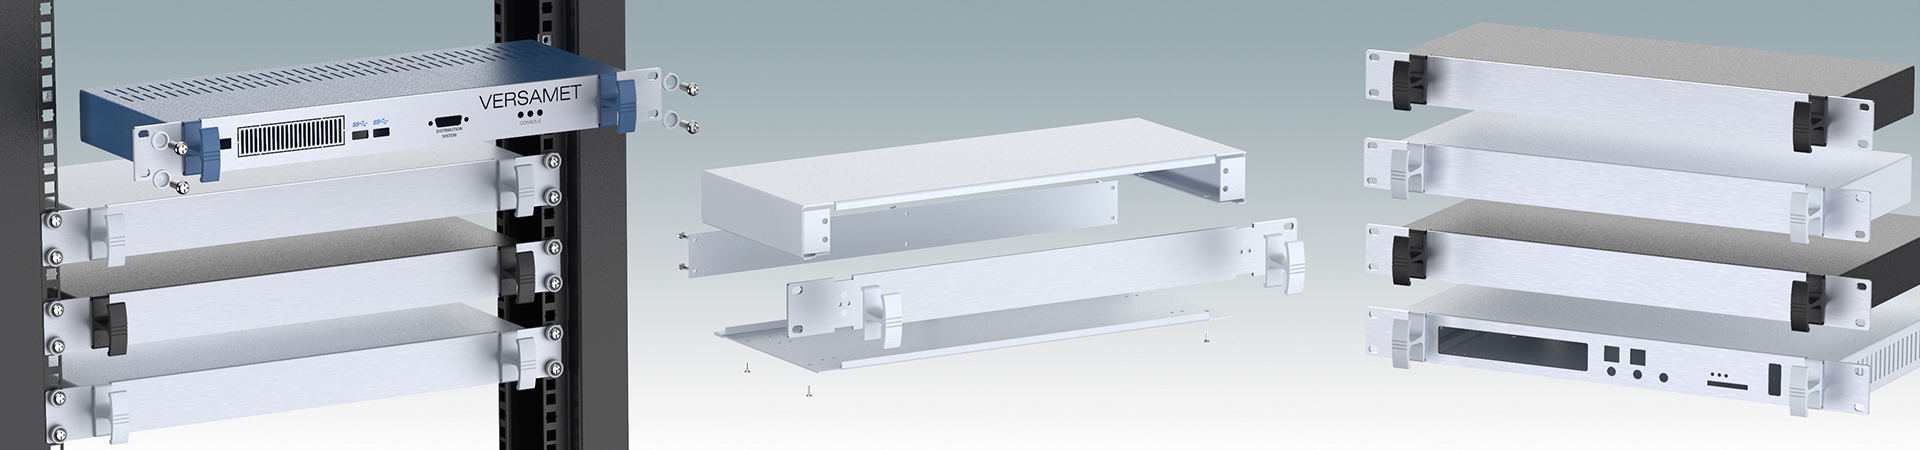 Versamet 19 inch enclosures